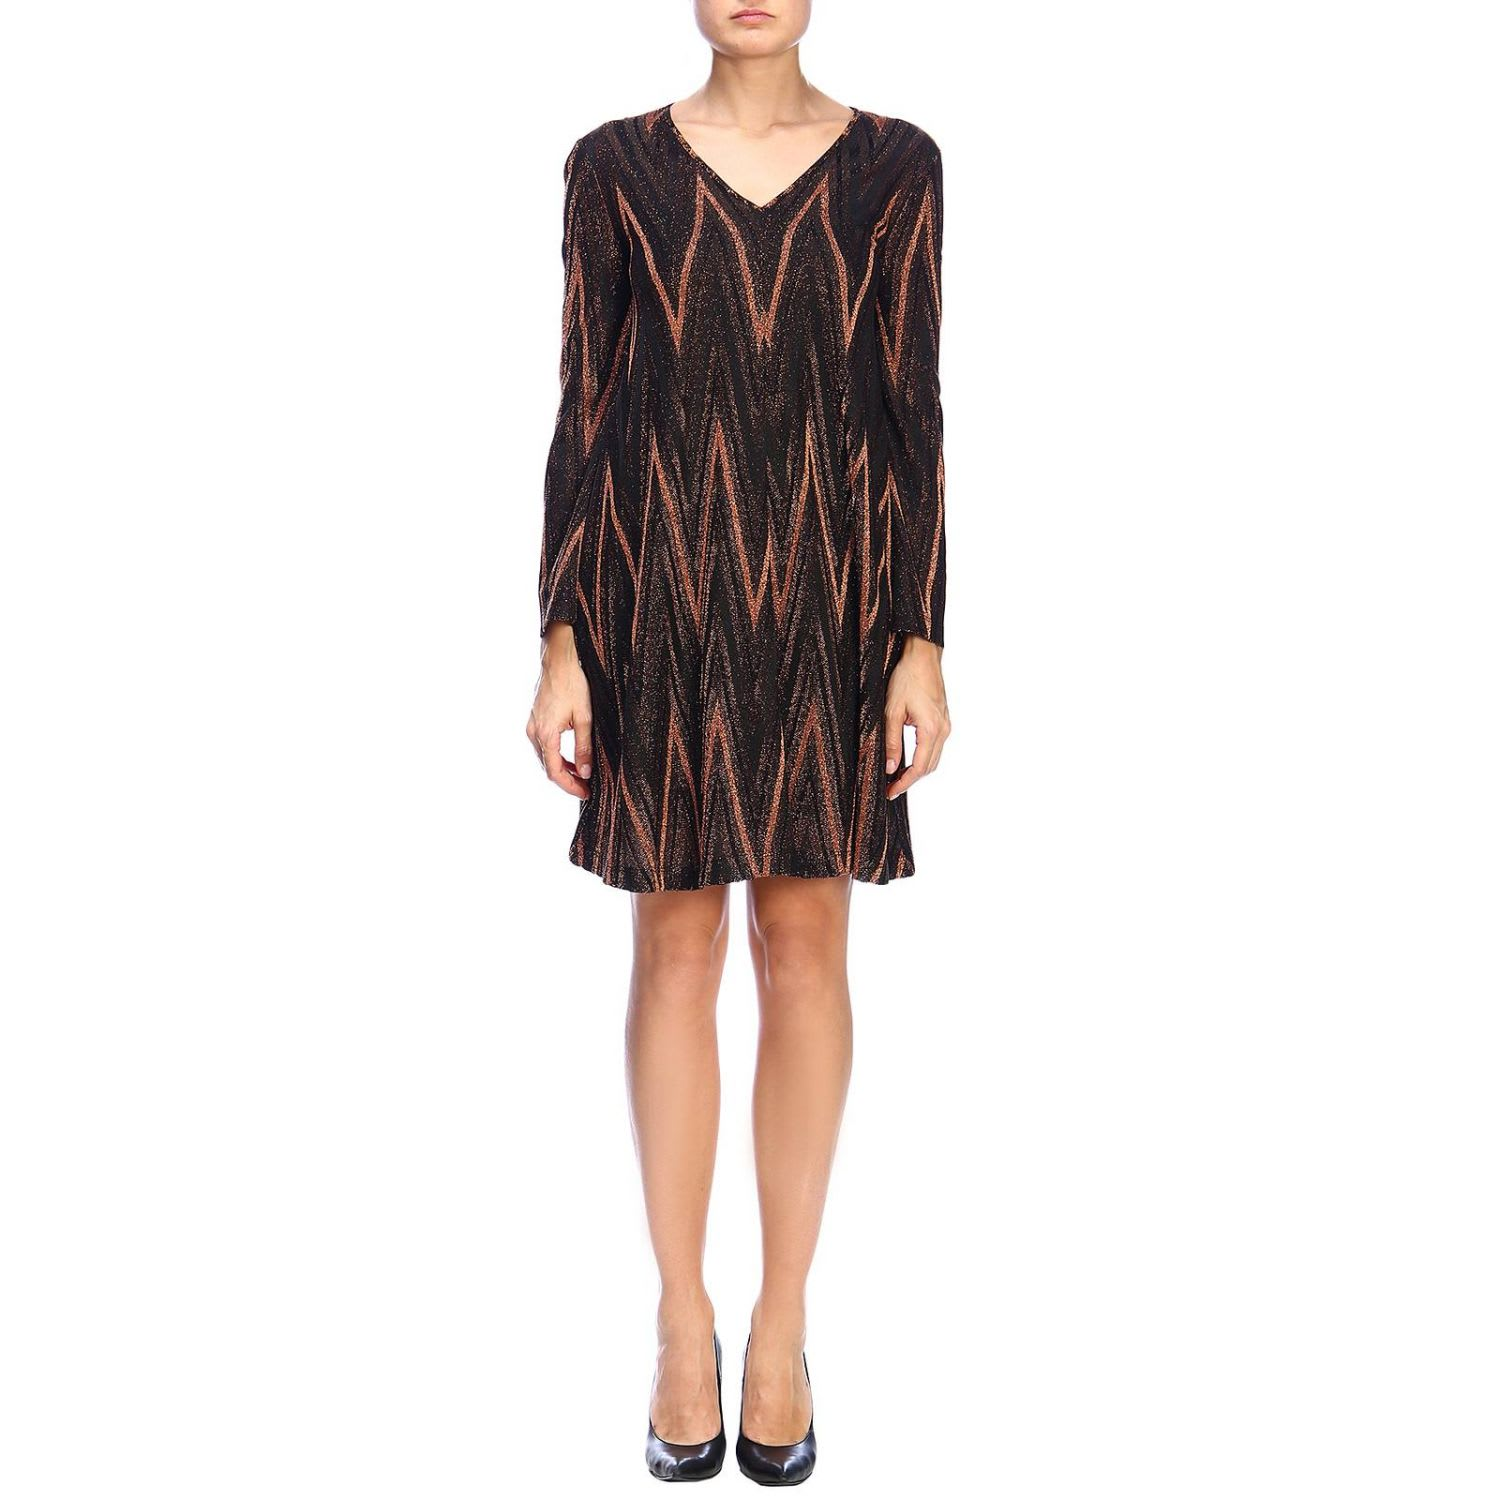 M Missoni Dress Dress Women M Missoni